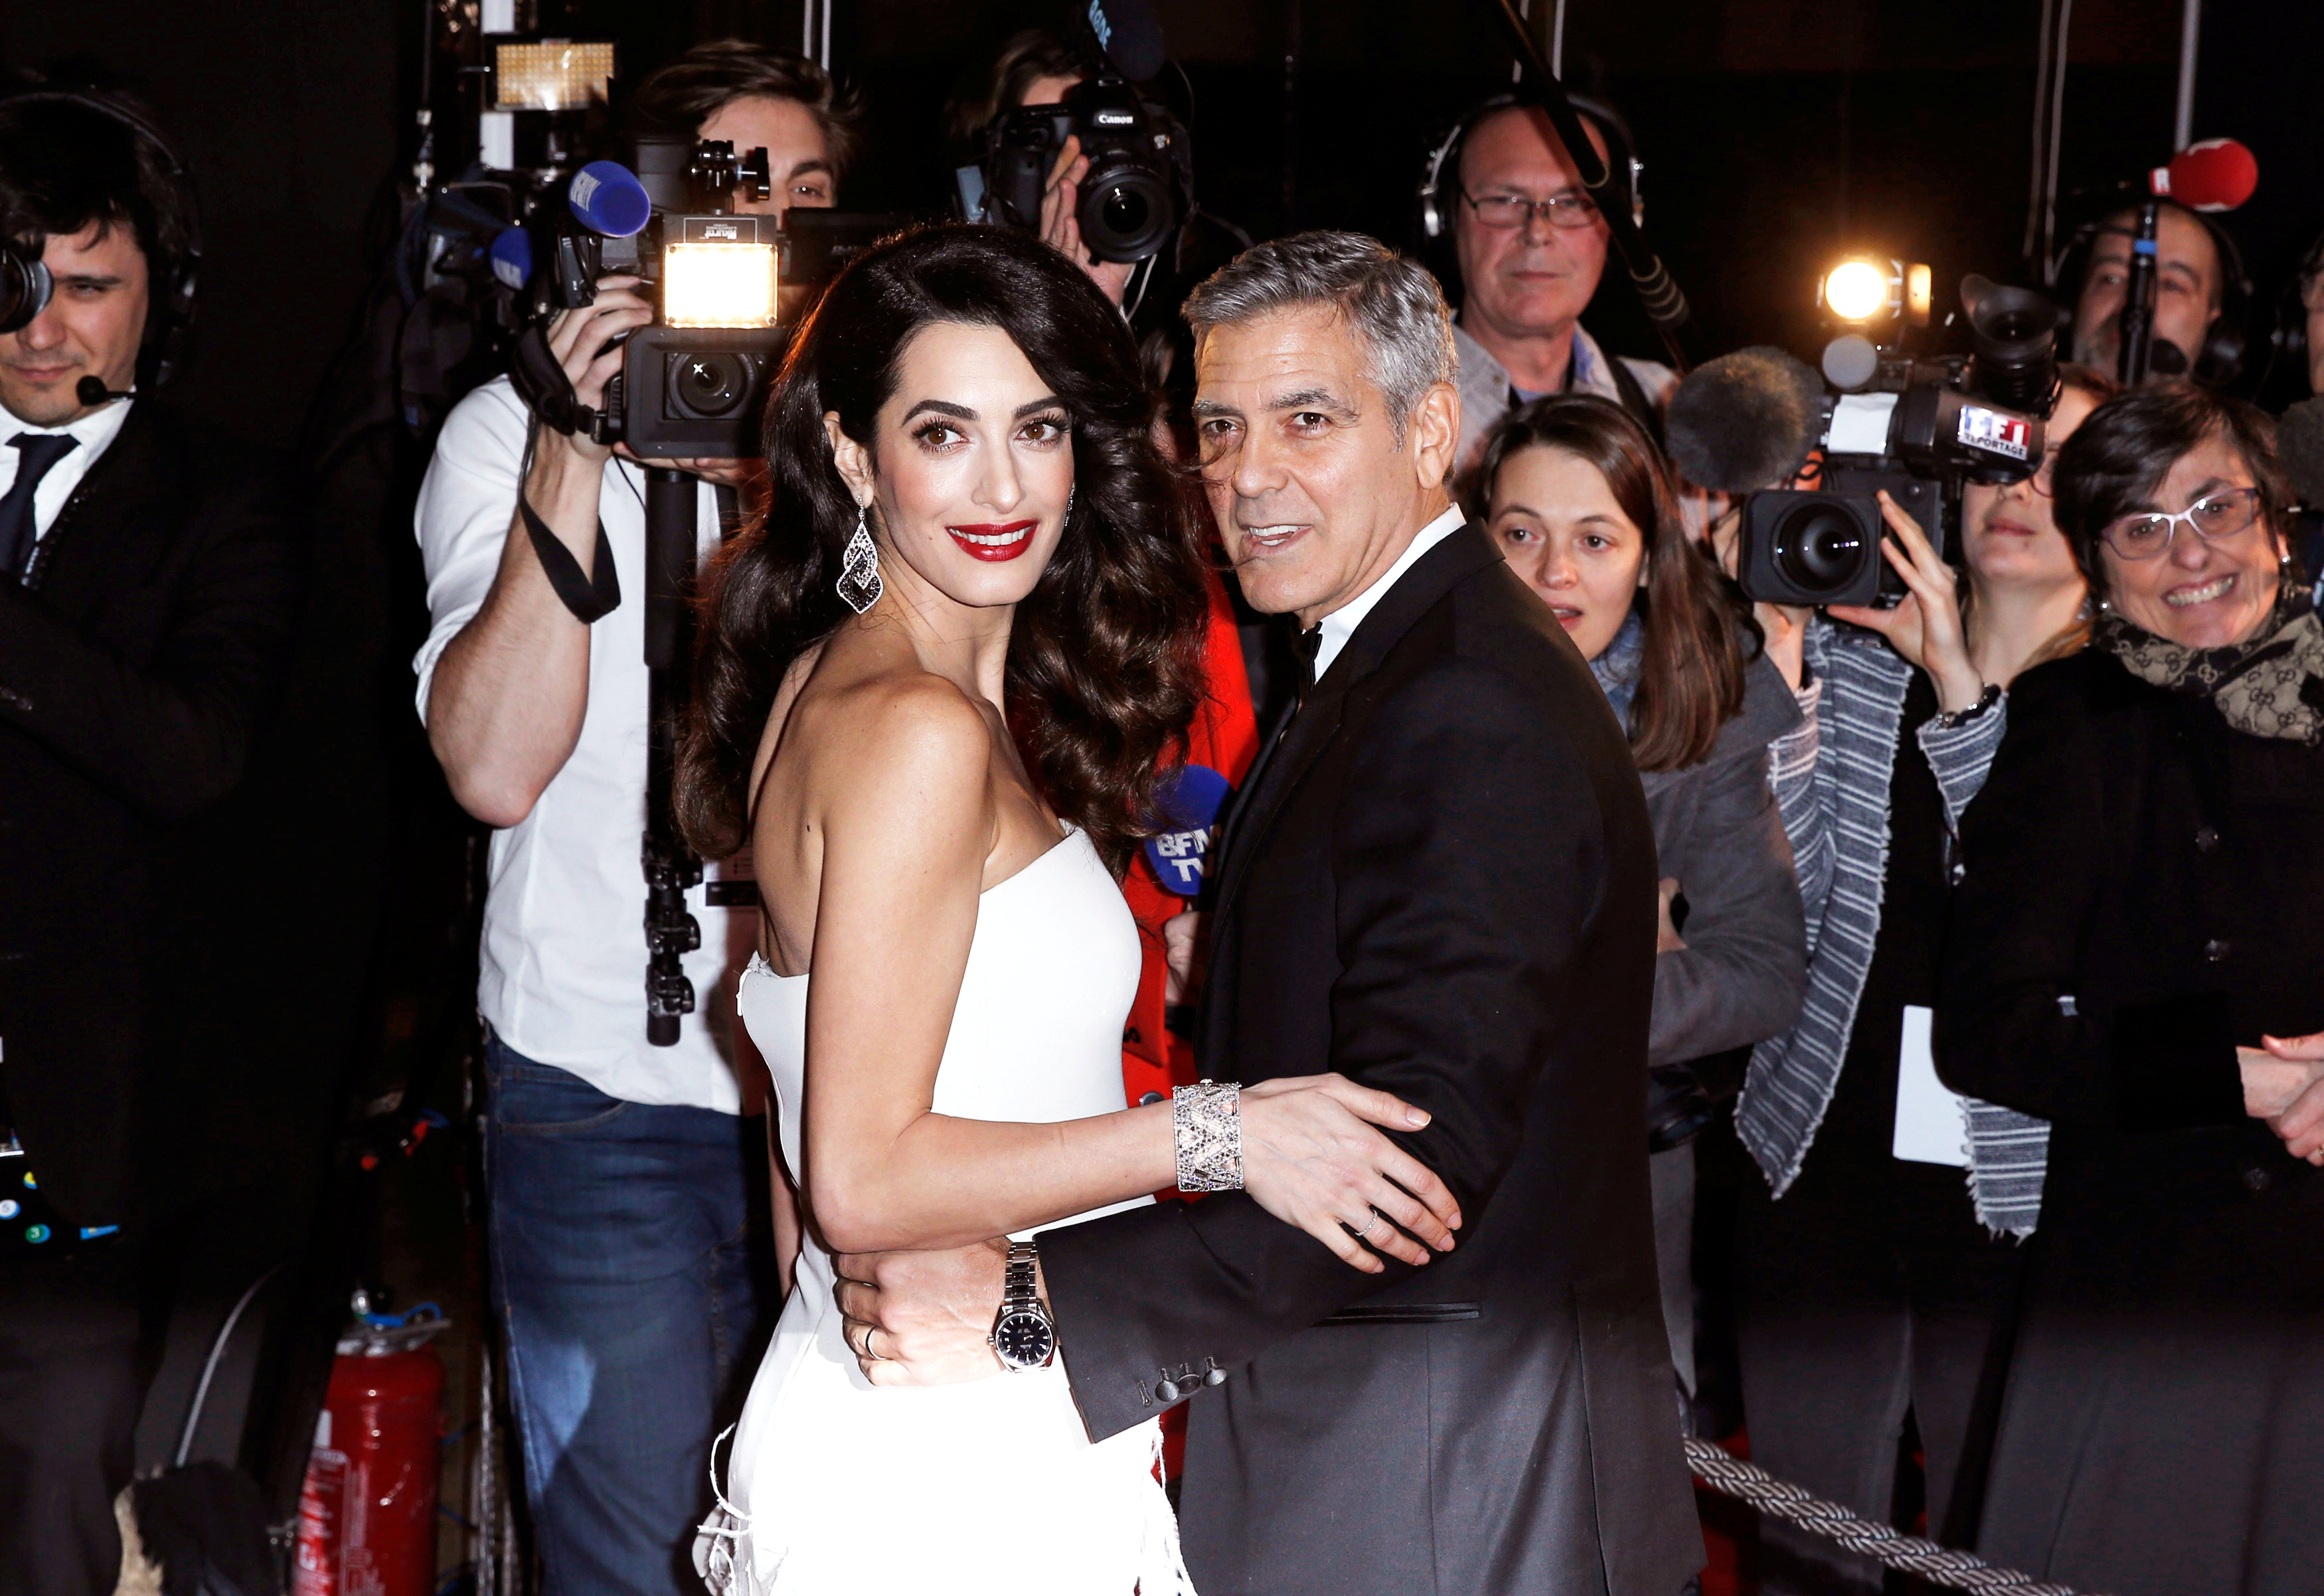 Actor George Clooney and his wife Amal arrive at the 42nd Cesar Awards ceremony in Paris, France on Feb. 24, 2017. (REUTERS/Gonzalo Fuentes)